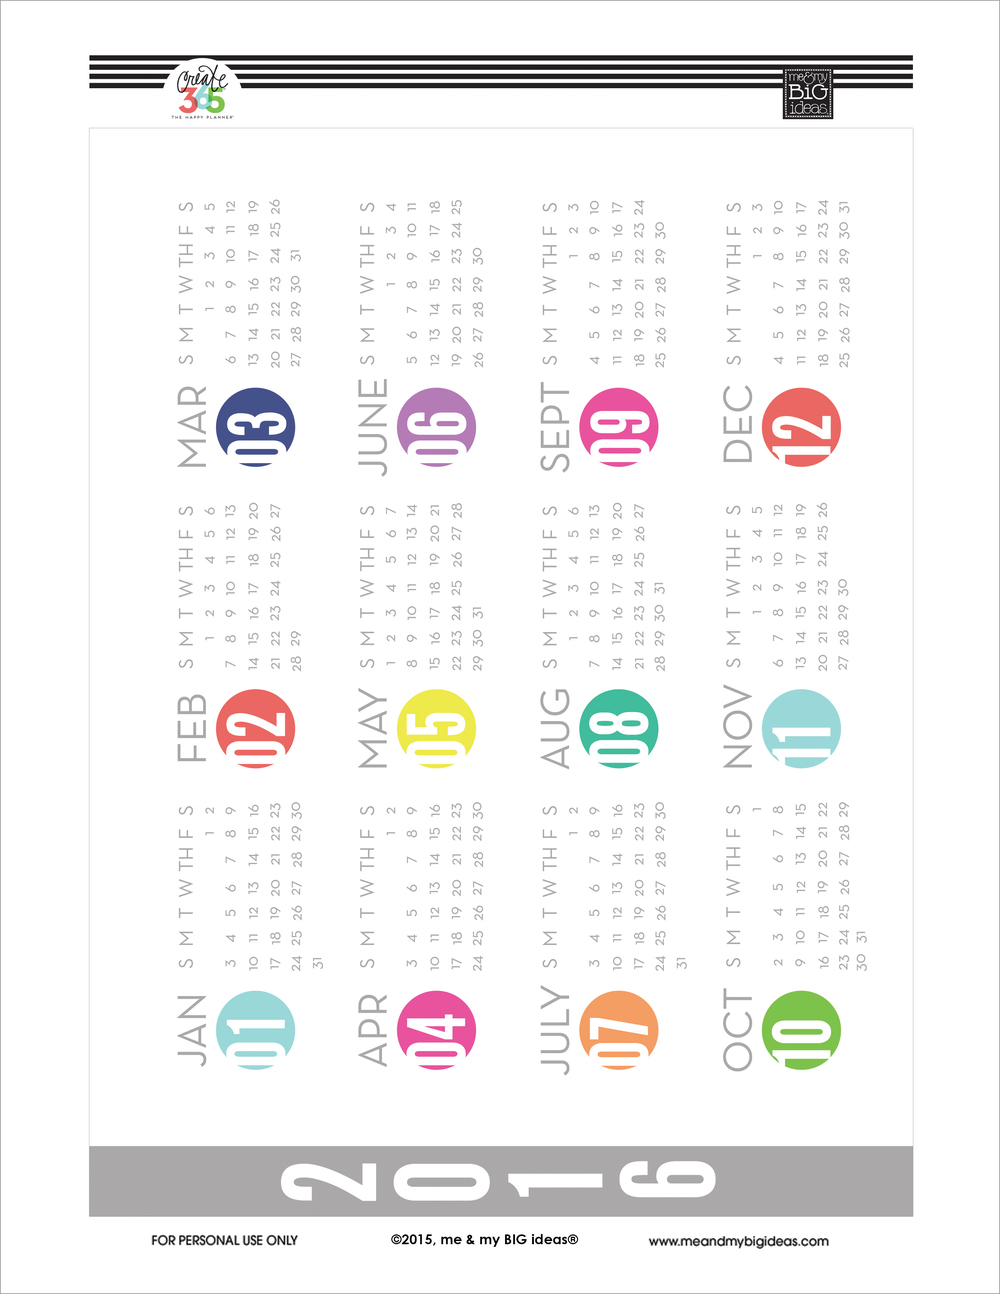 2016 'Year at a Glance' Free Printable for Create 365™ The Happy Planner™ | me & my BIG ideas